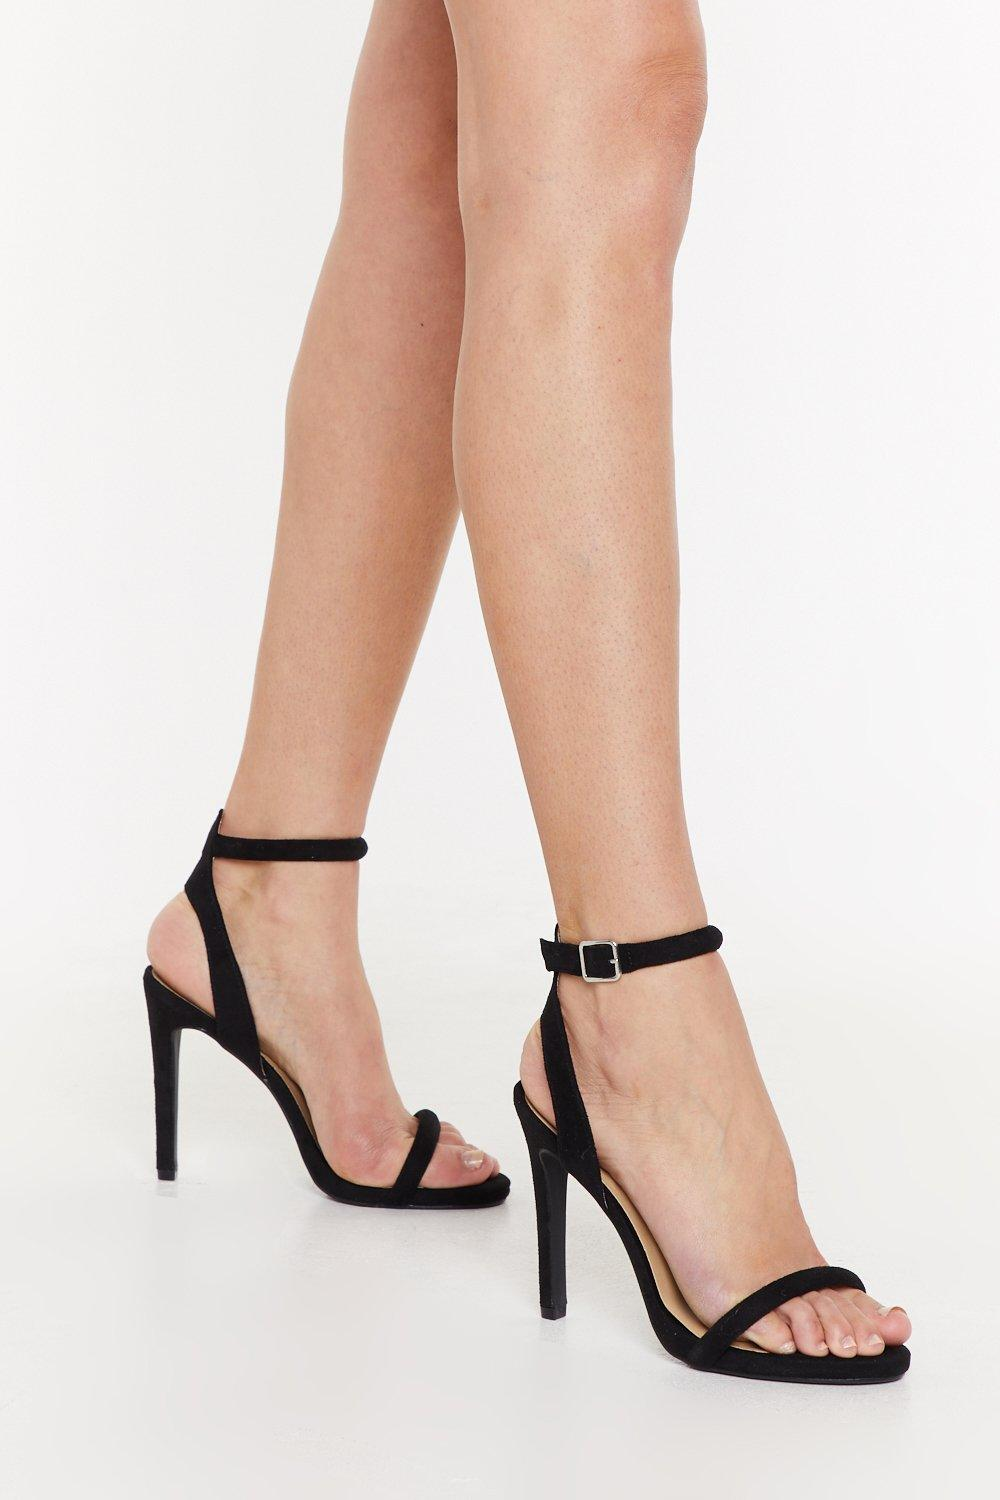 5d29fd4bbcb Step Aside Faux Suede Stiletto Heels | Shop Clothes at Nasty Gal!